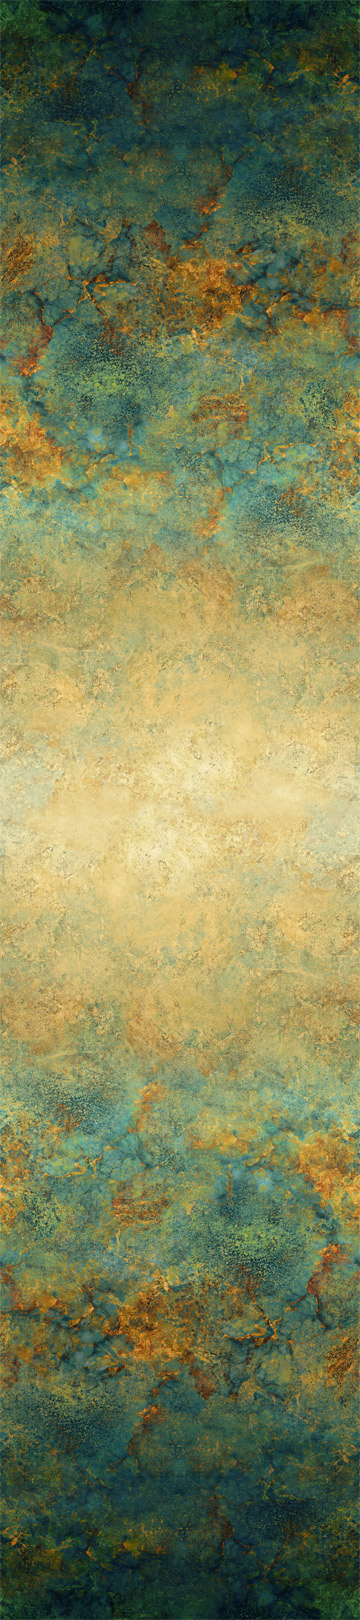 108 Stonehenge Gradations -Teal Copper